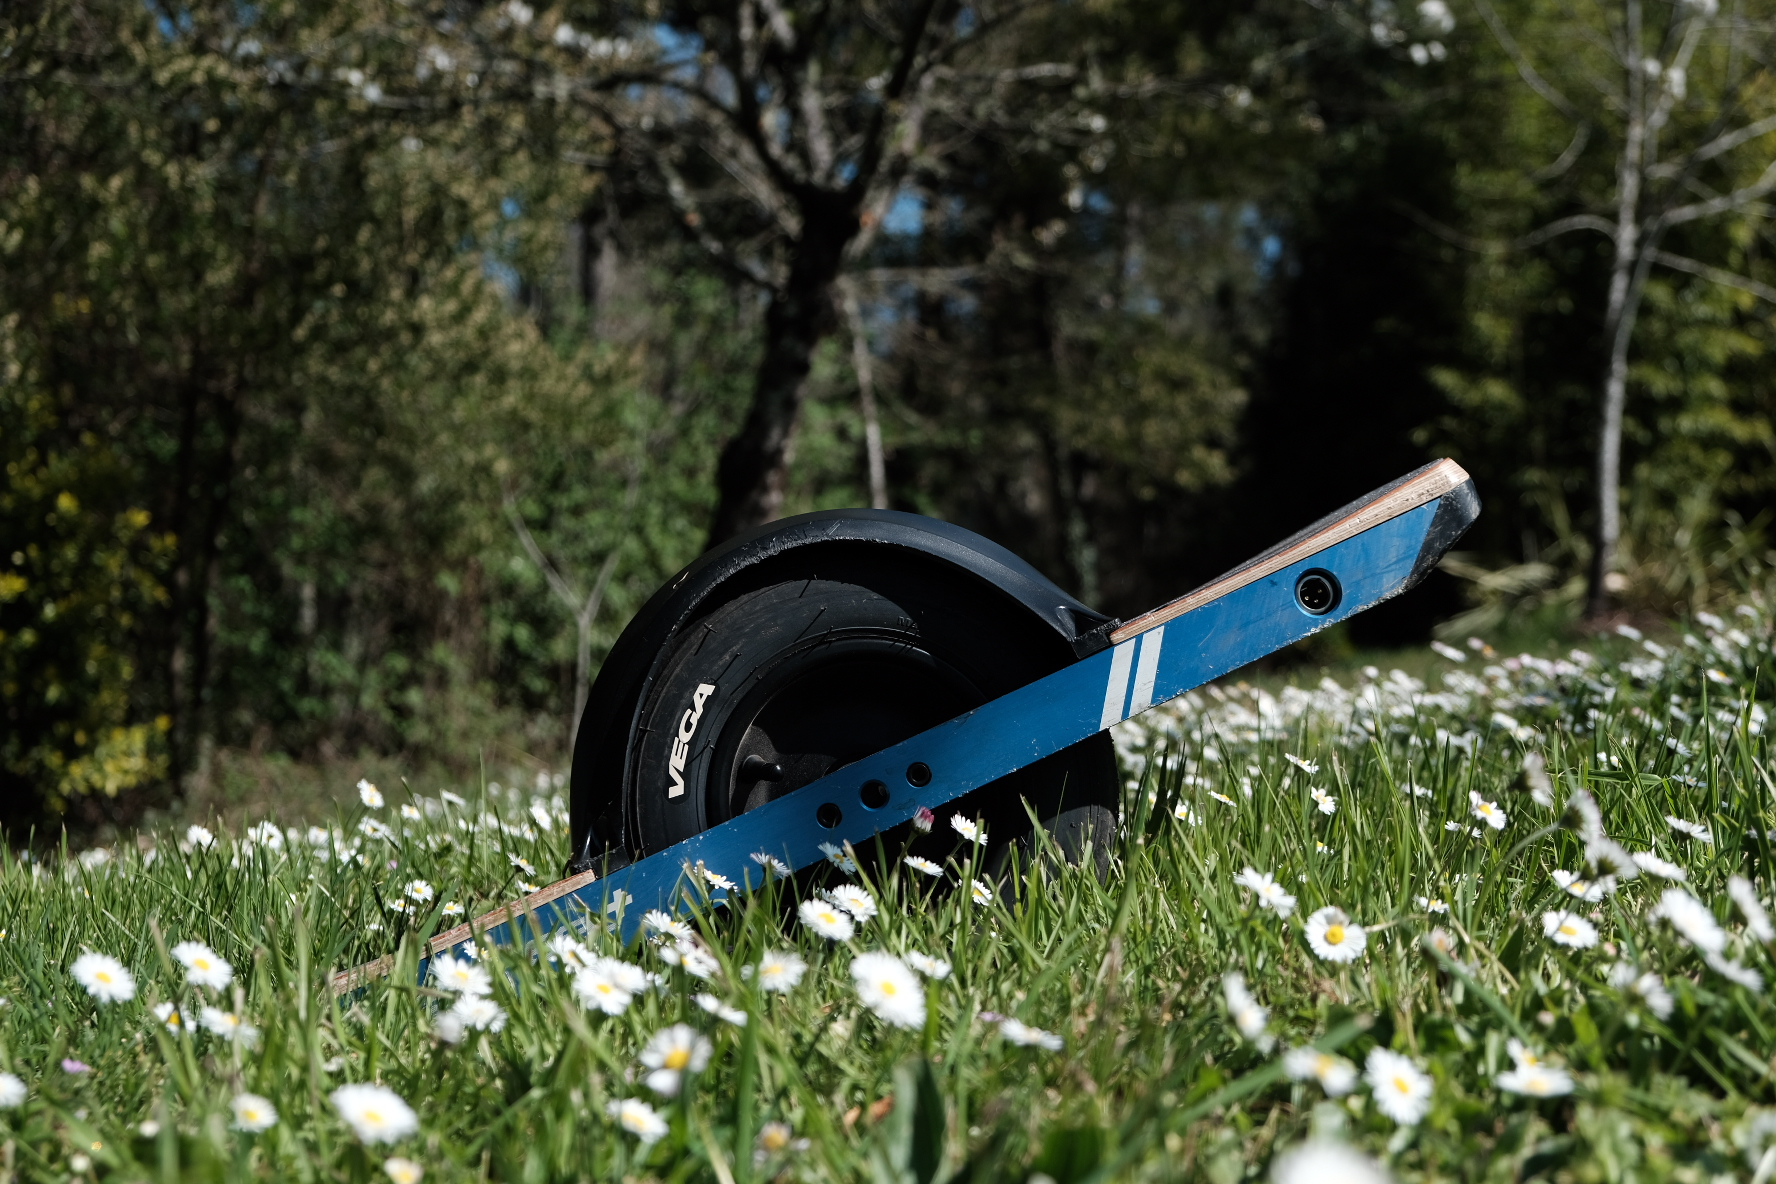 Onewheel+ review: Is one wheel enough? — Becoming intermediate